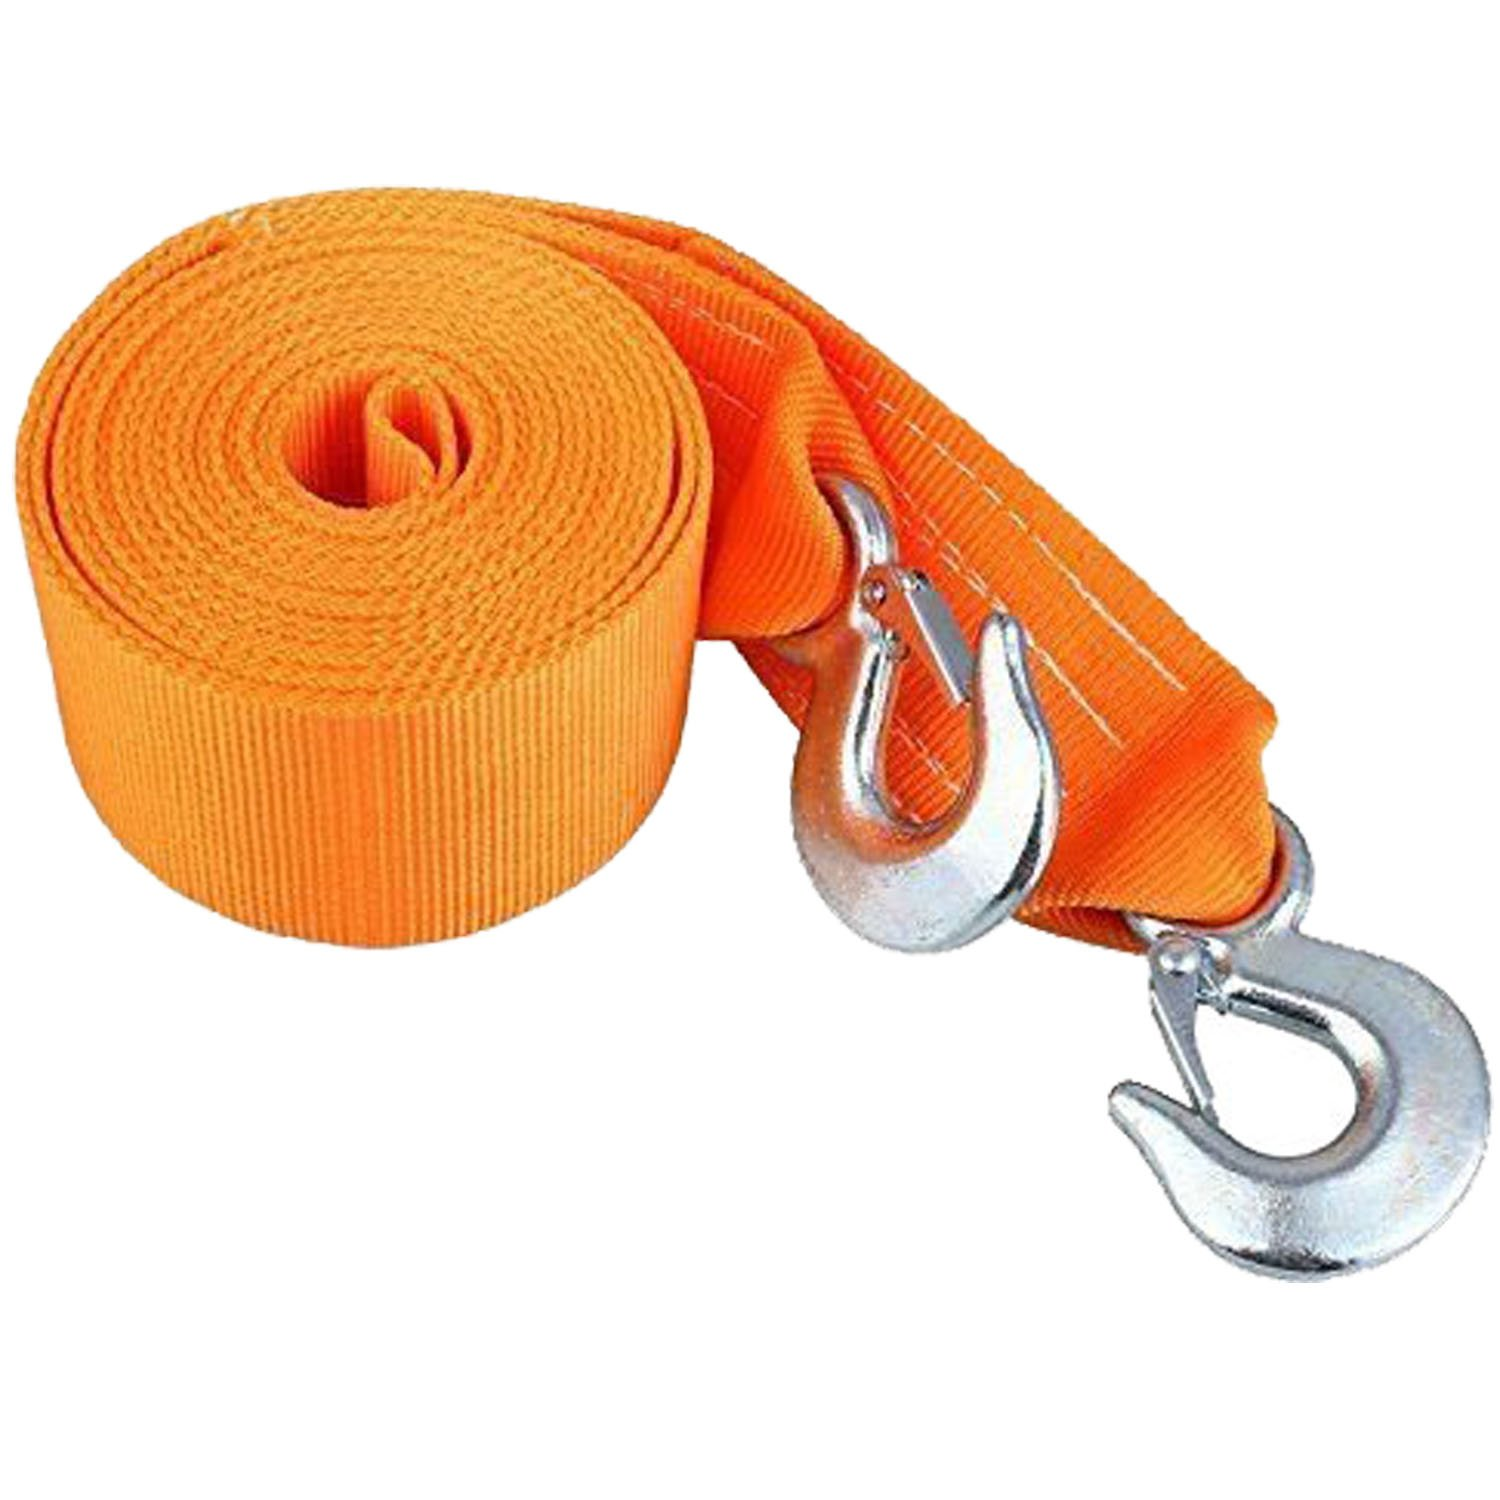 Tow Strap Heavy Duty, Recovery Strap 3'' X 20' 18,000 LB Break Strength Rope Winch Strap with 2 Hook by Selectec